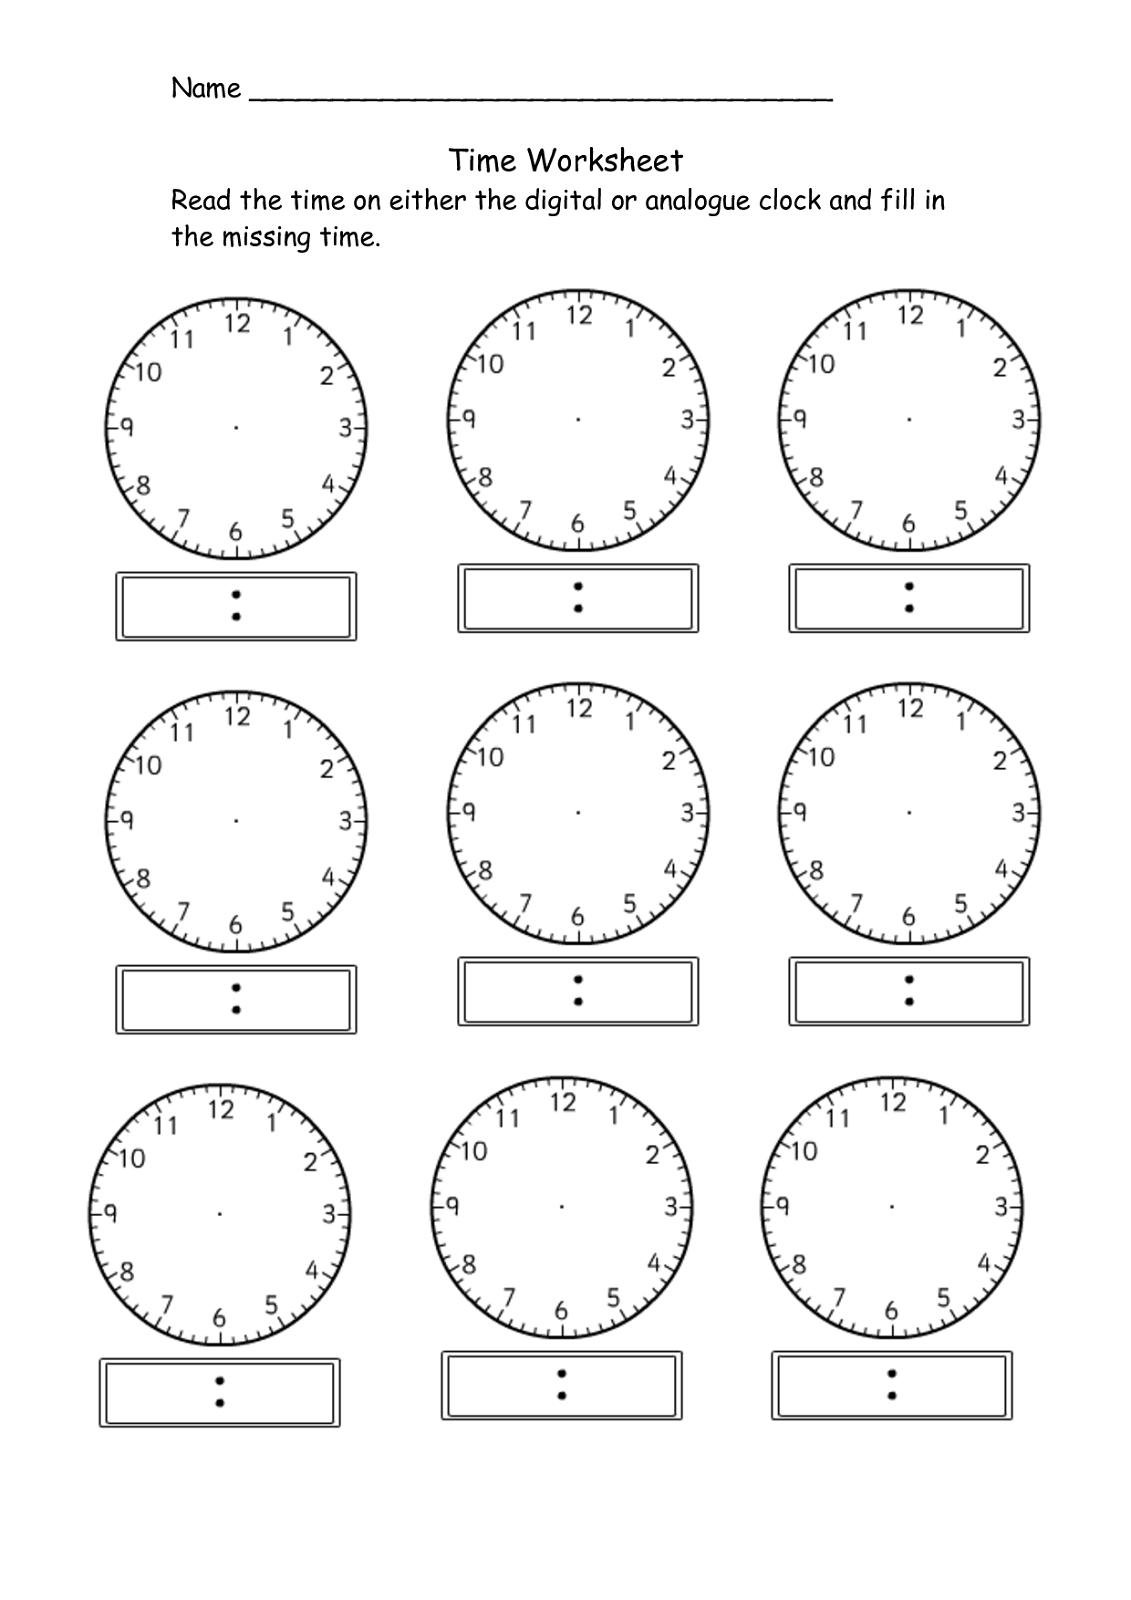 Worksheets Clock Faces Worksheets clock face worksheets to print activity shelter worksheet new